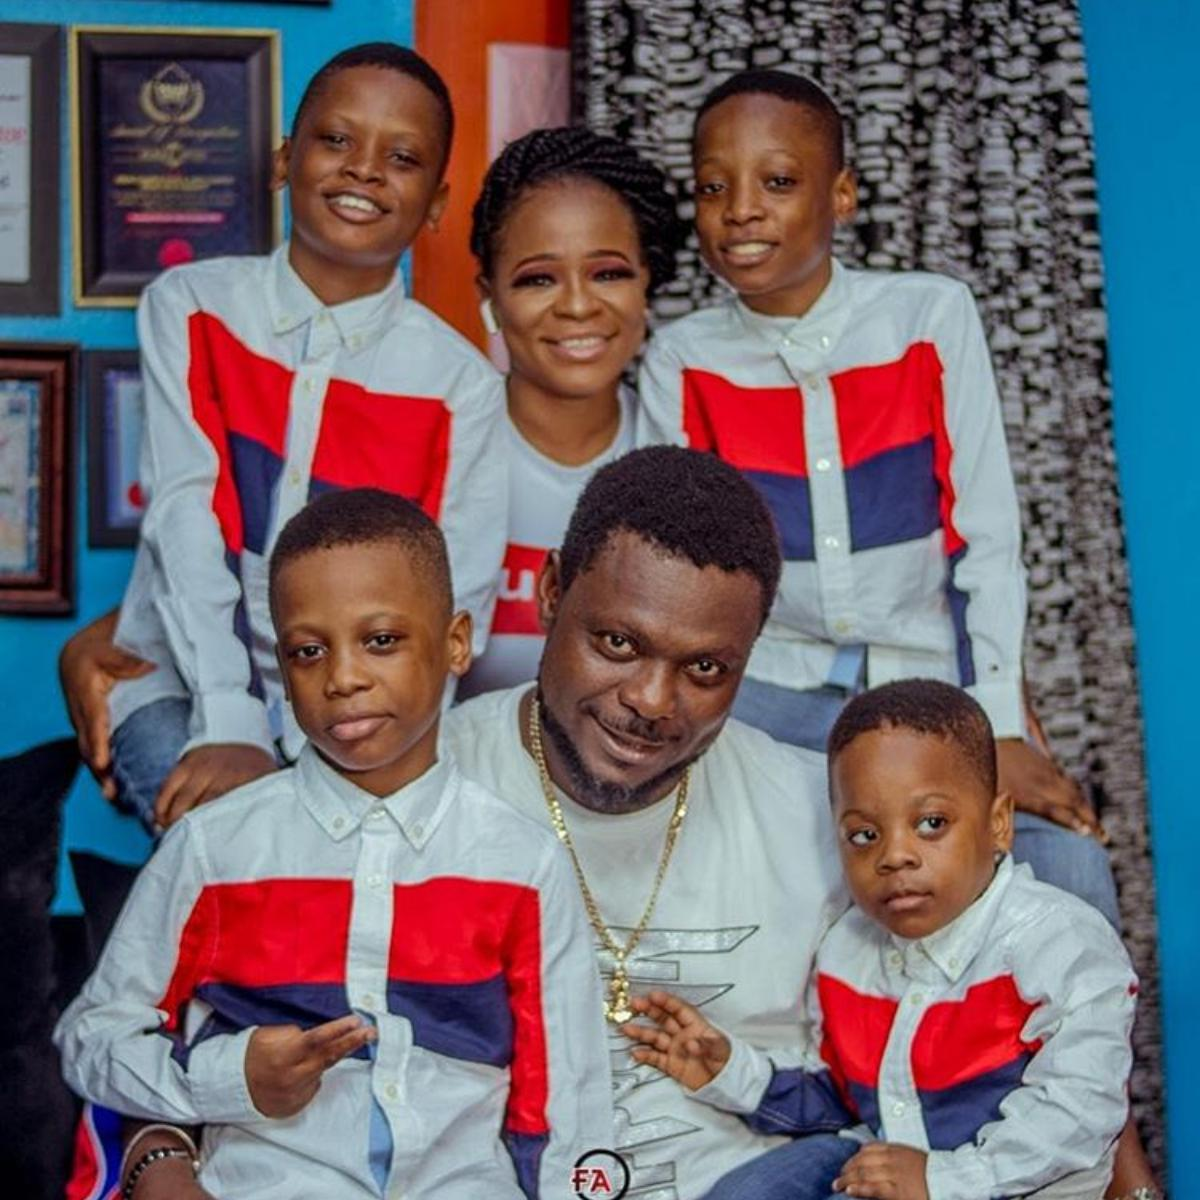 Kunle Afod And His 4 Sons Rock Matching Shirts